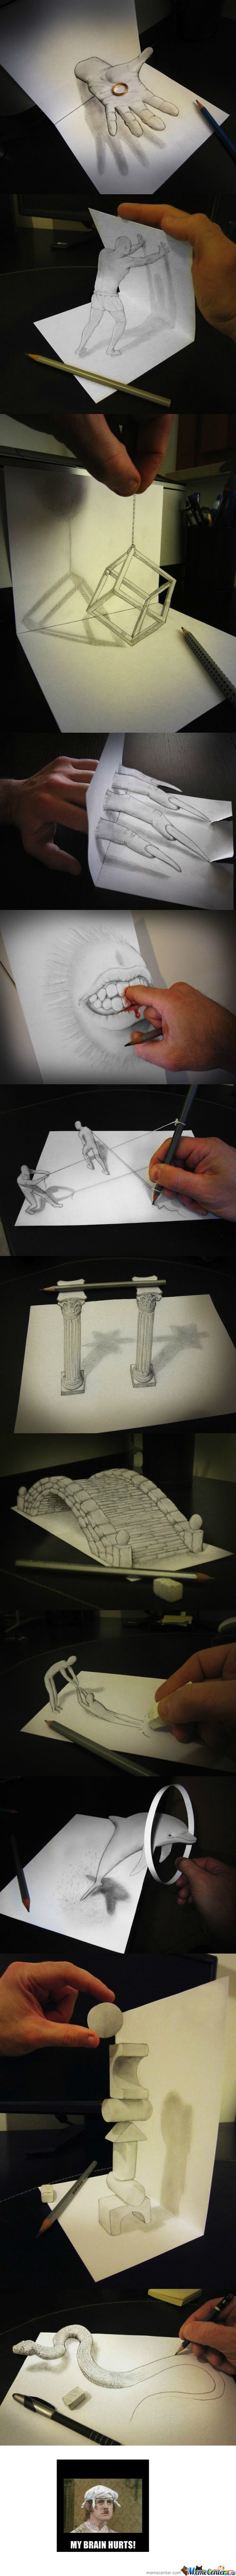 [RMX] Some Awesome People 4#(3D Drawings)